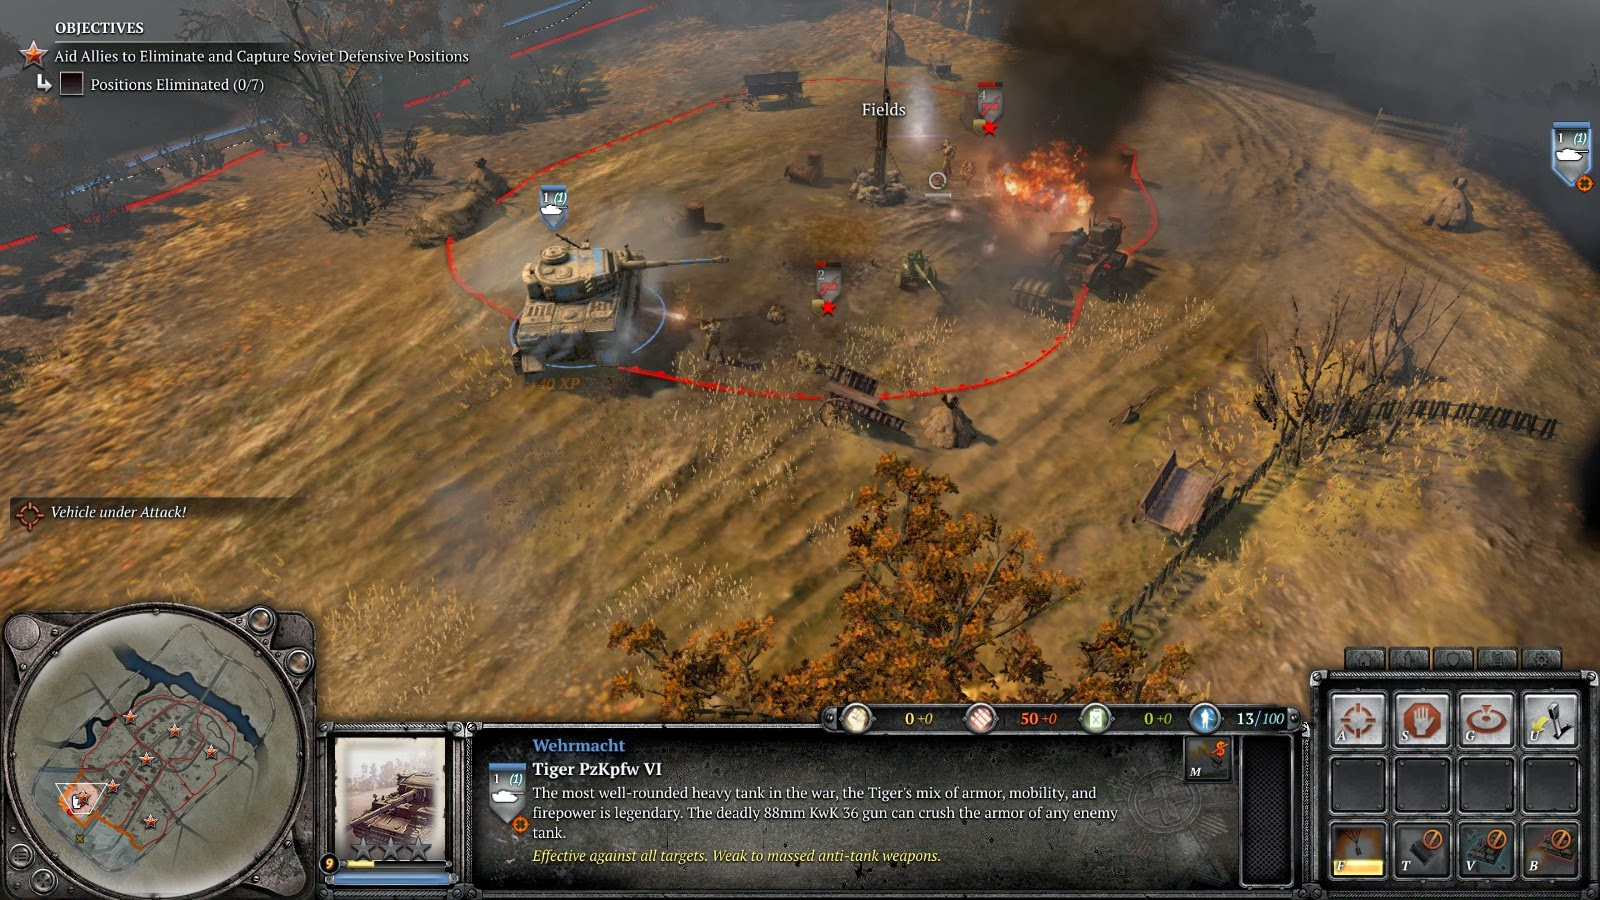 Coh 2 Case Blue : Australian gaming scene: case blue dlc for company of heroes 2 [windows]